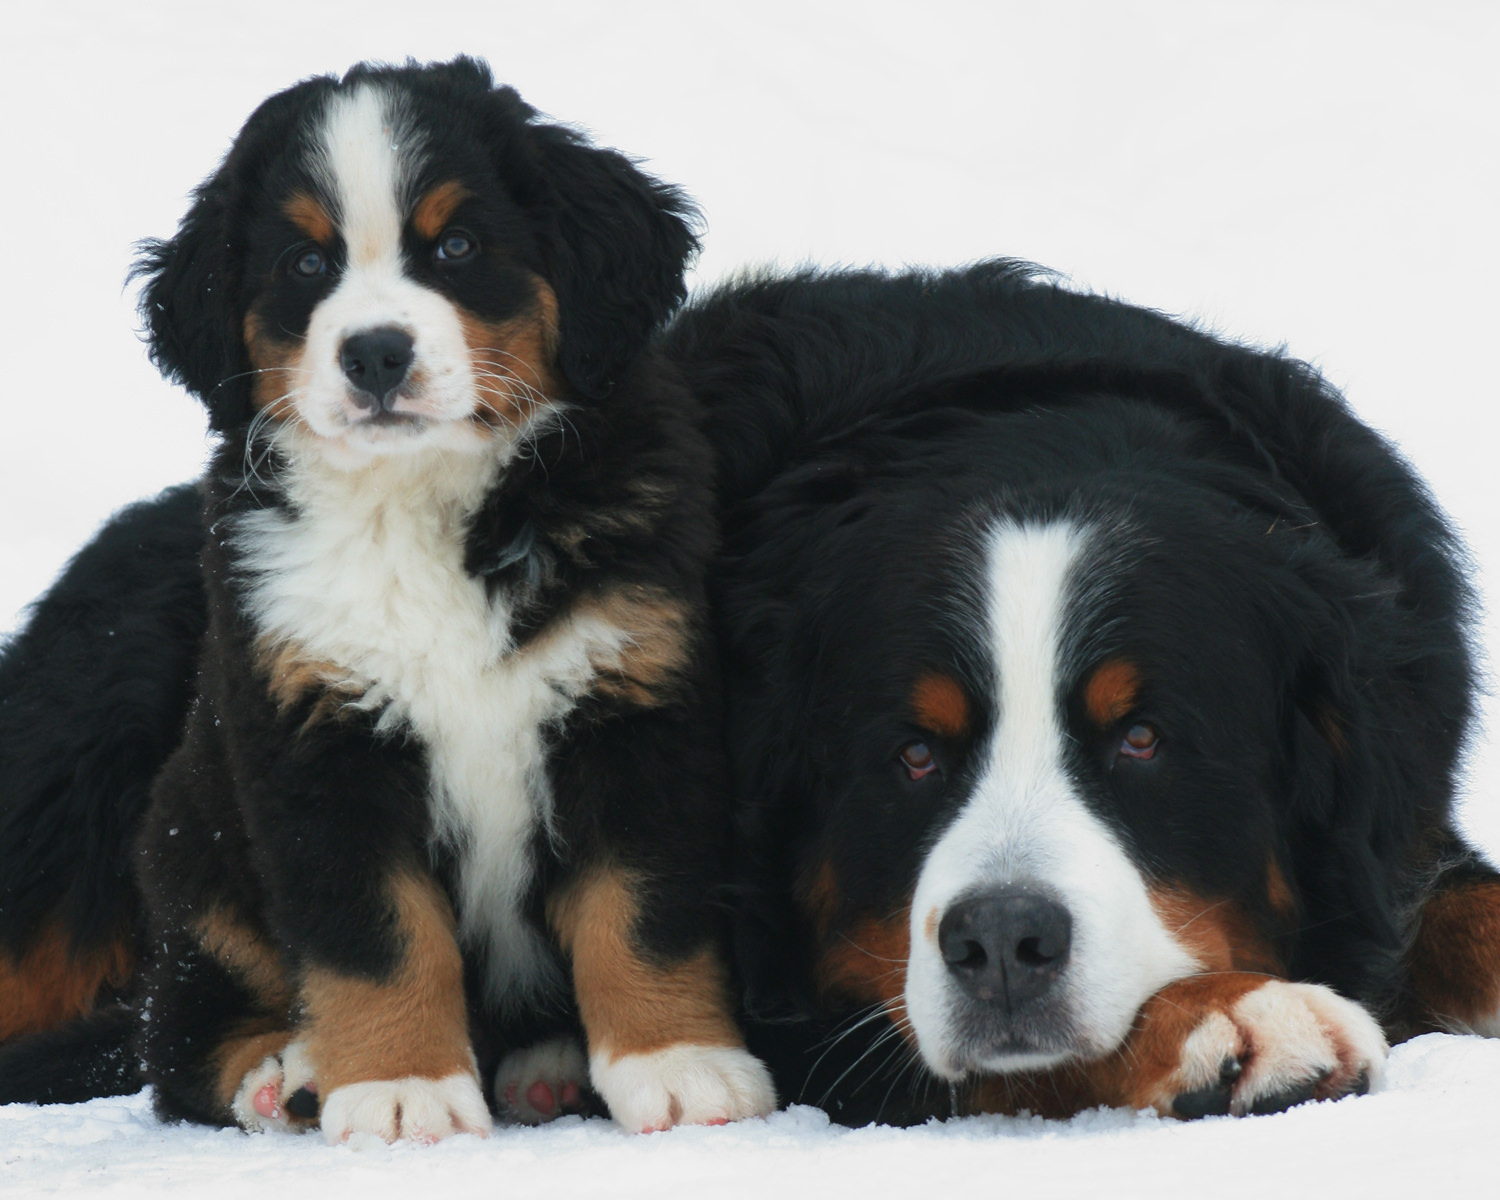 Bernese Mountain Dog and puppy in the snow.